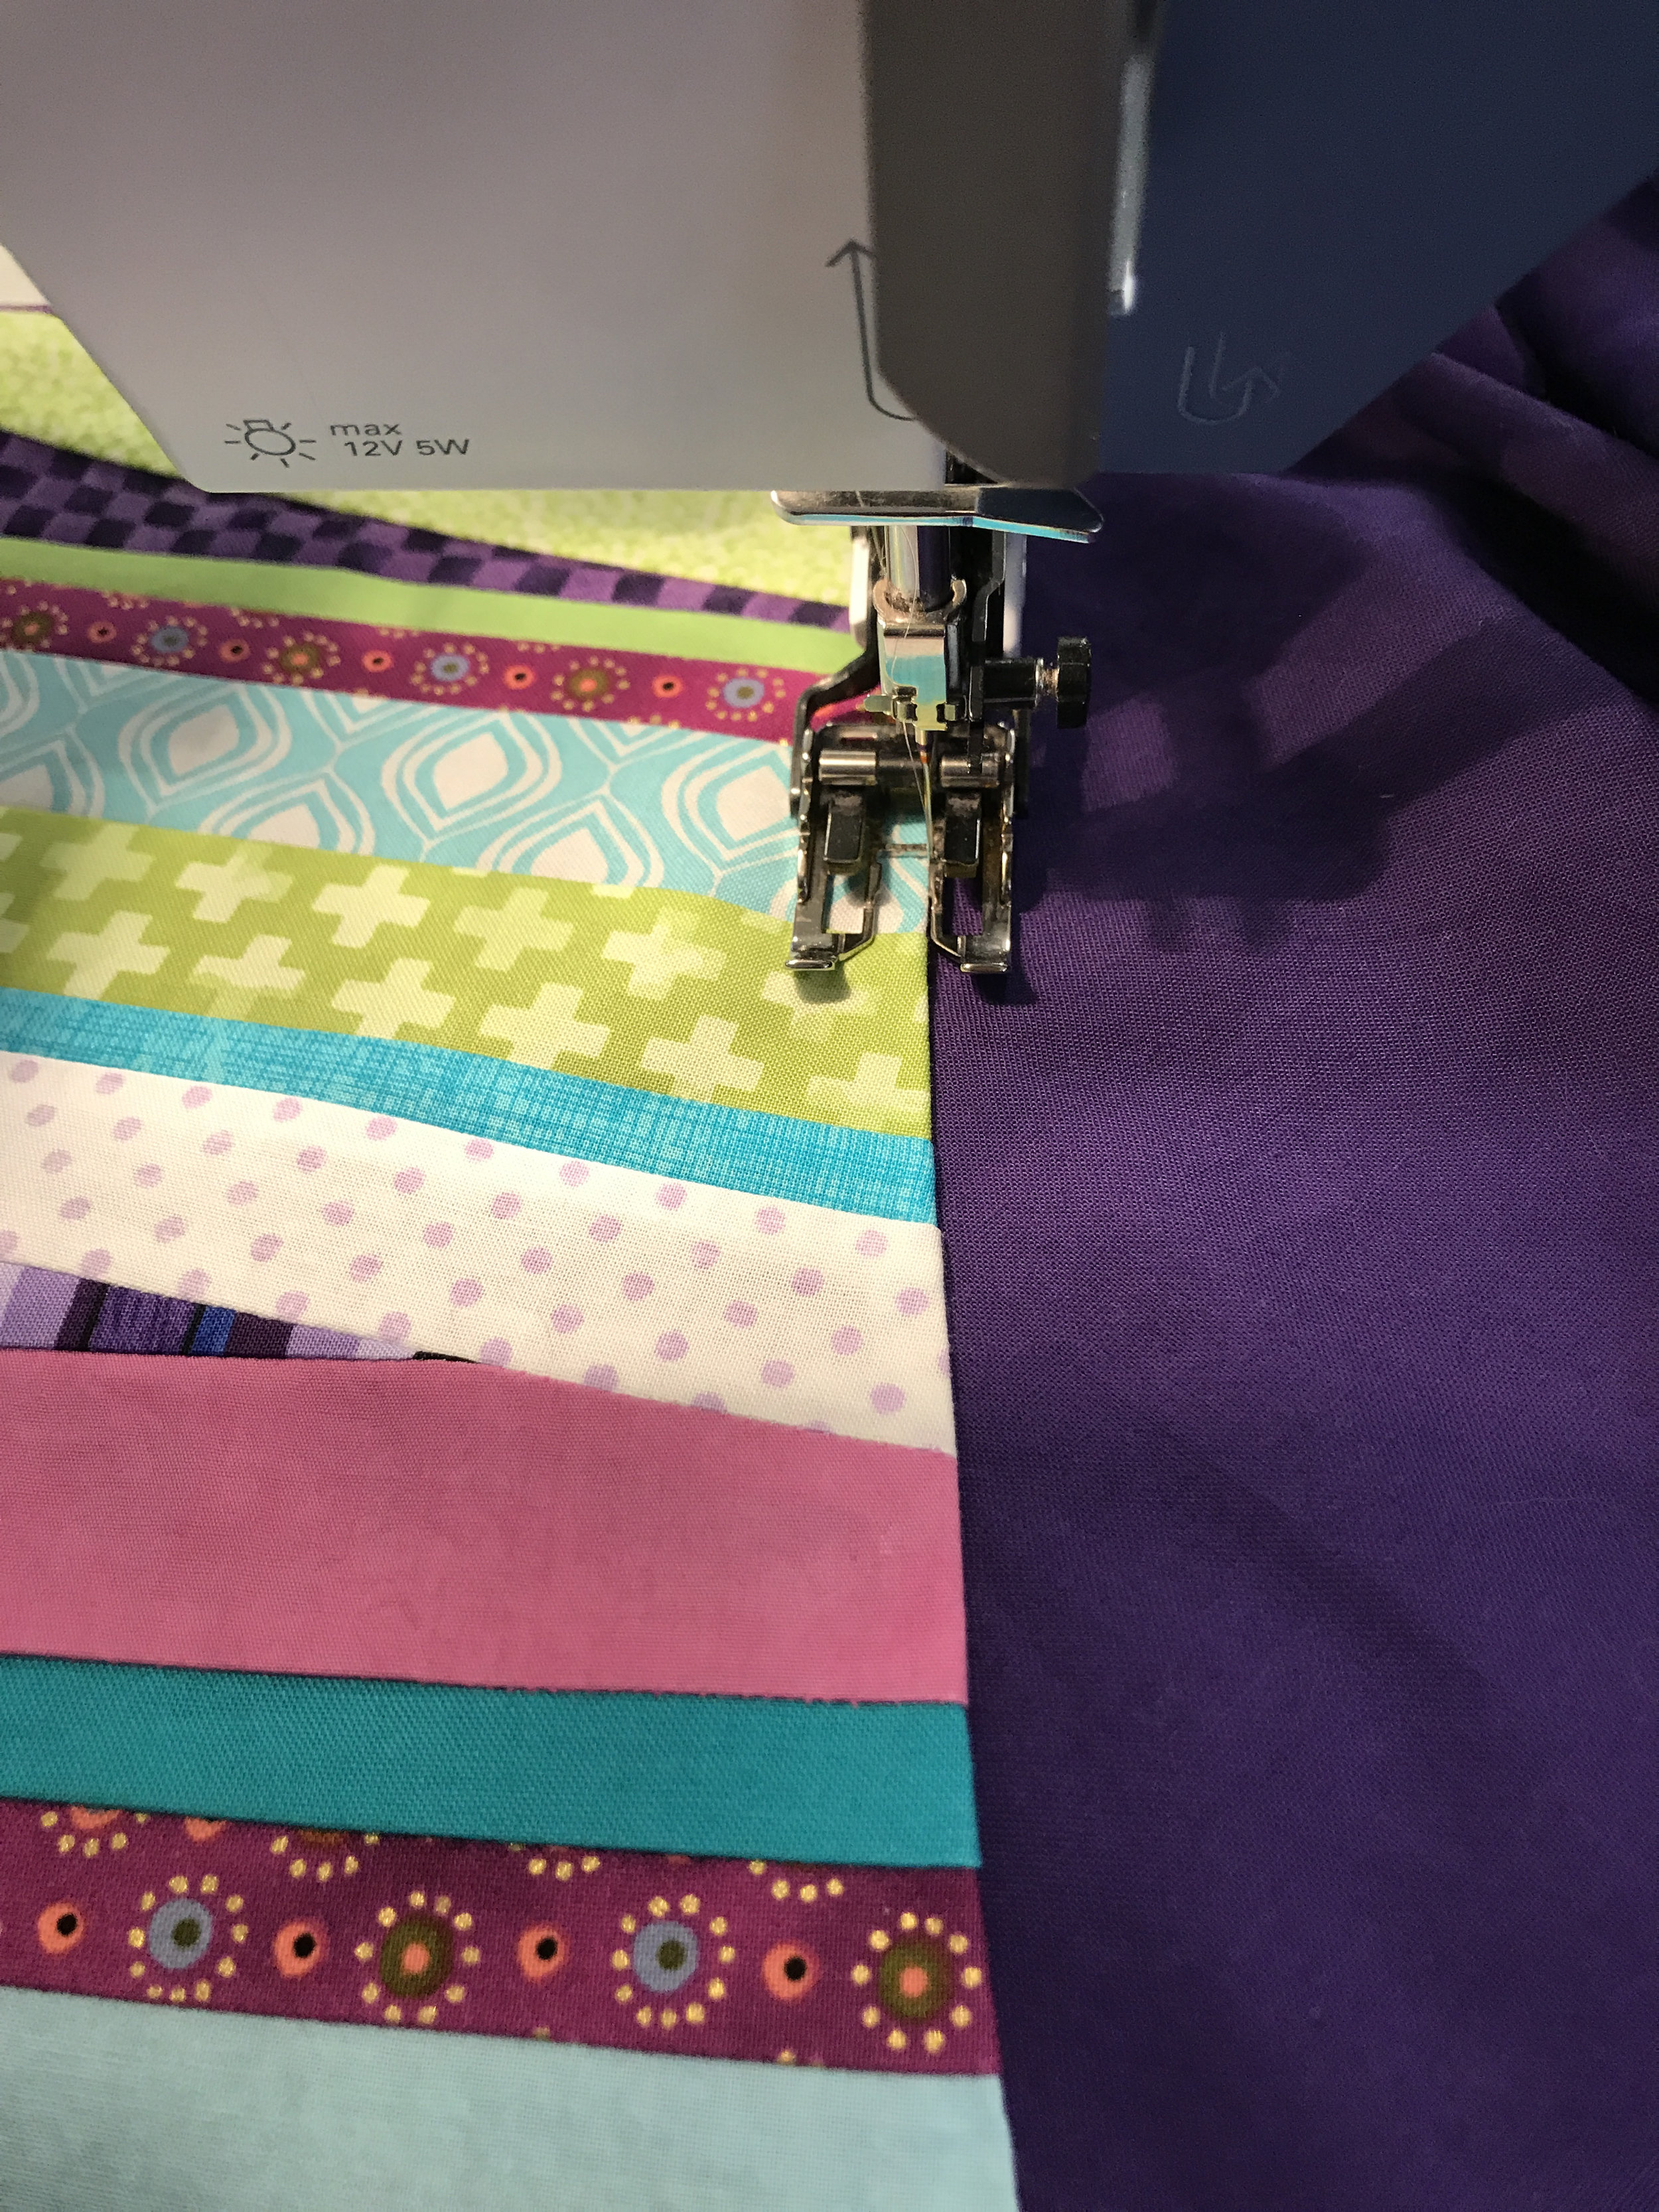 The handle was attached to the quilt top using monofilament thread and machine applique.